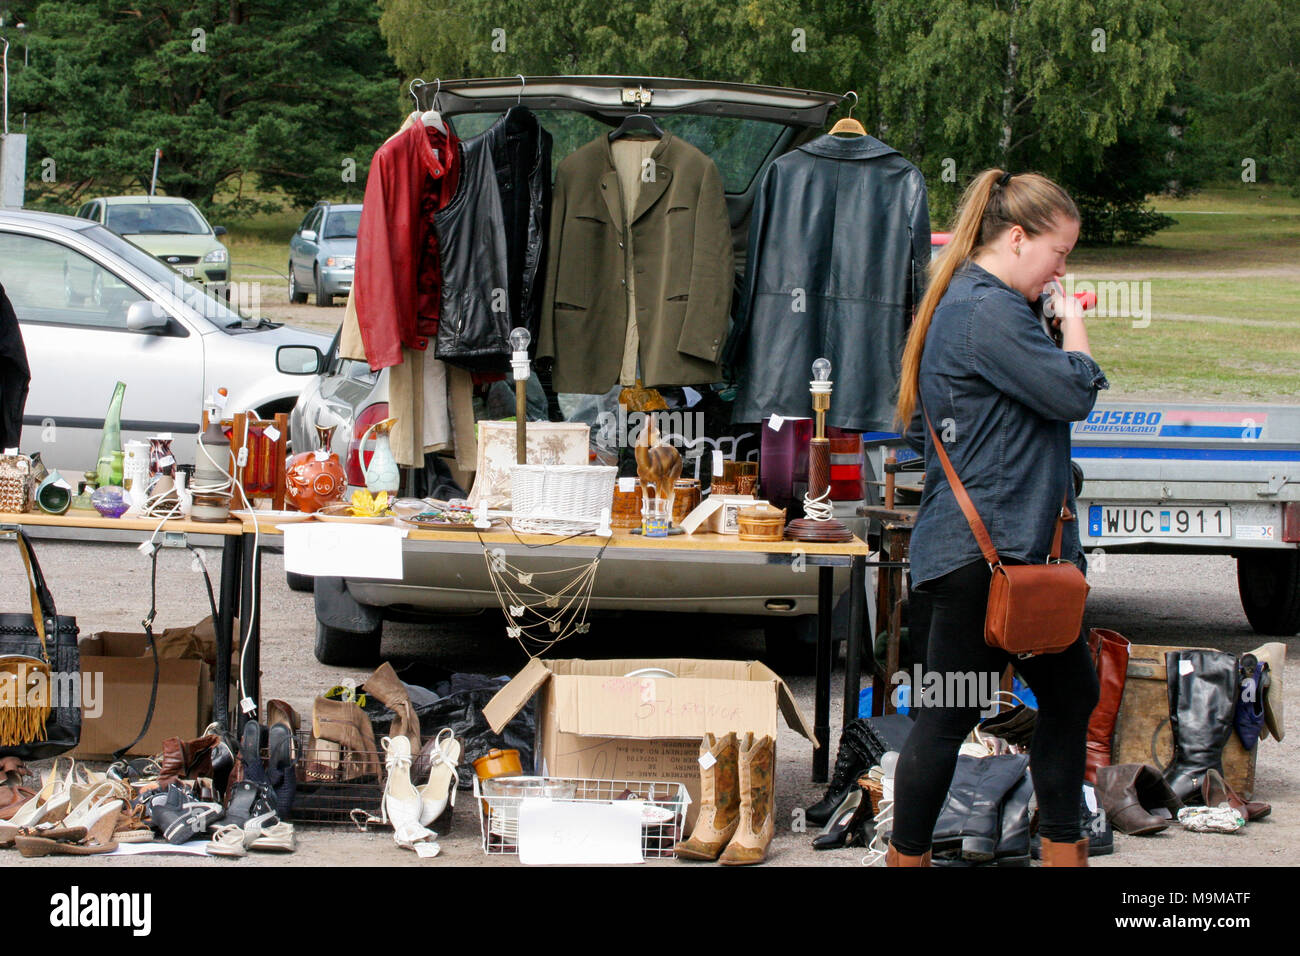 SECOND HAND MARKET  2016 with clothes and old shoes - Stock Image